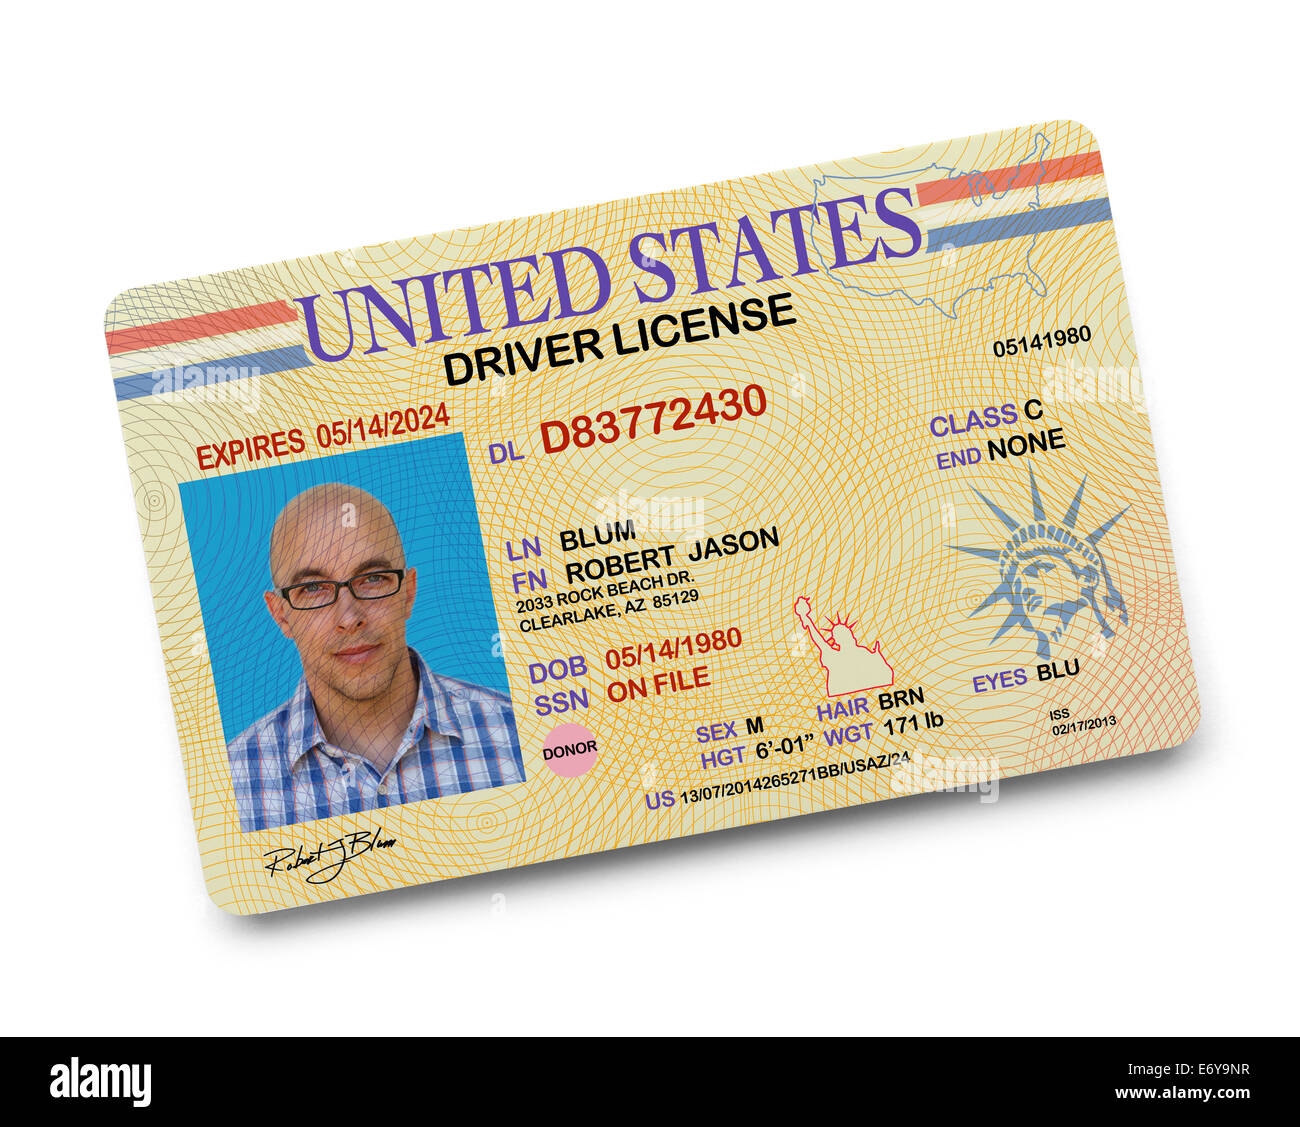 US Driver License Isolated on White Background. - Stock Image